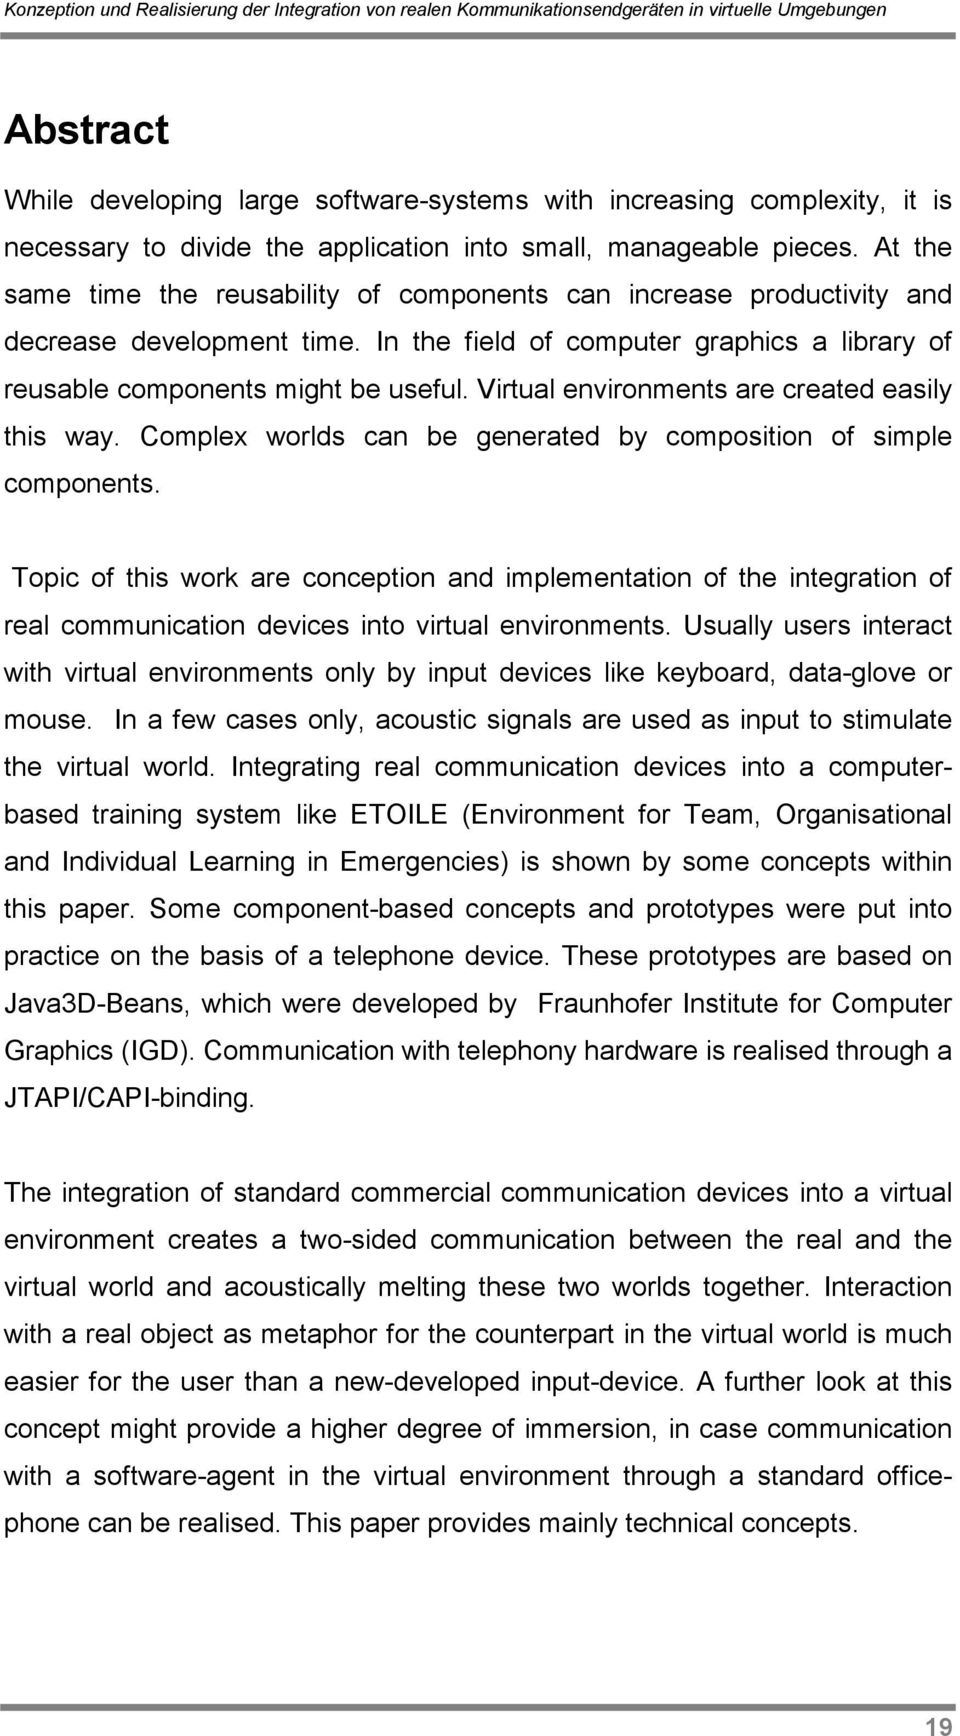 Virtual environments are created easily this way. Complex worlds can be generated by composition of simple components.